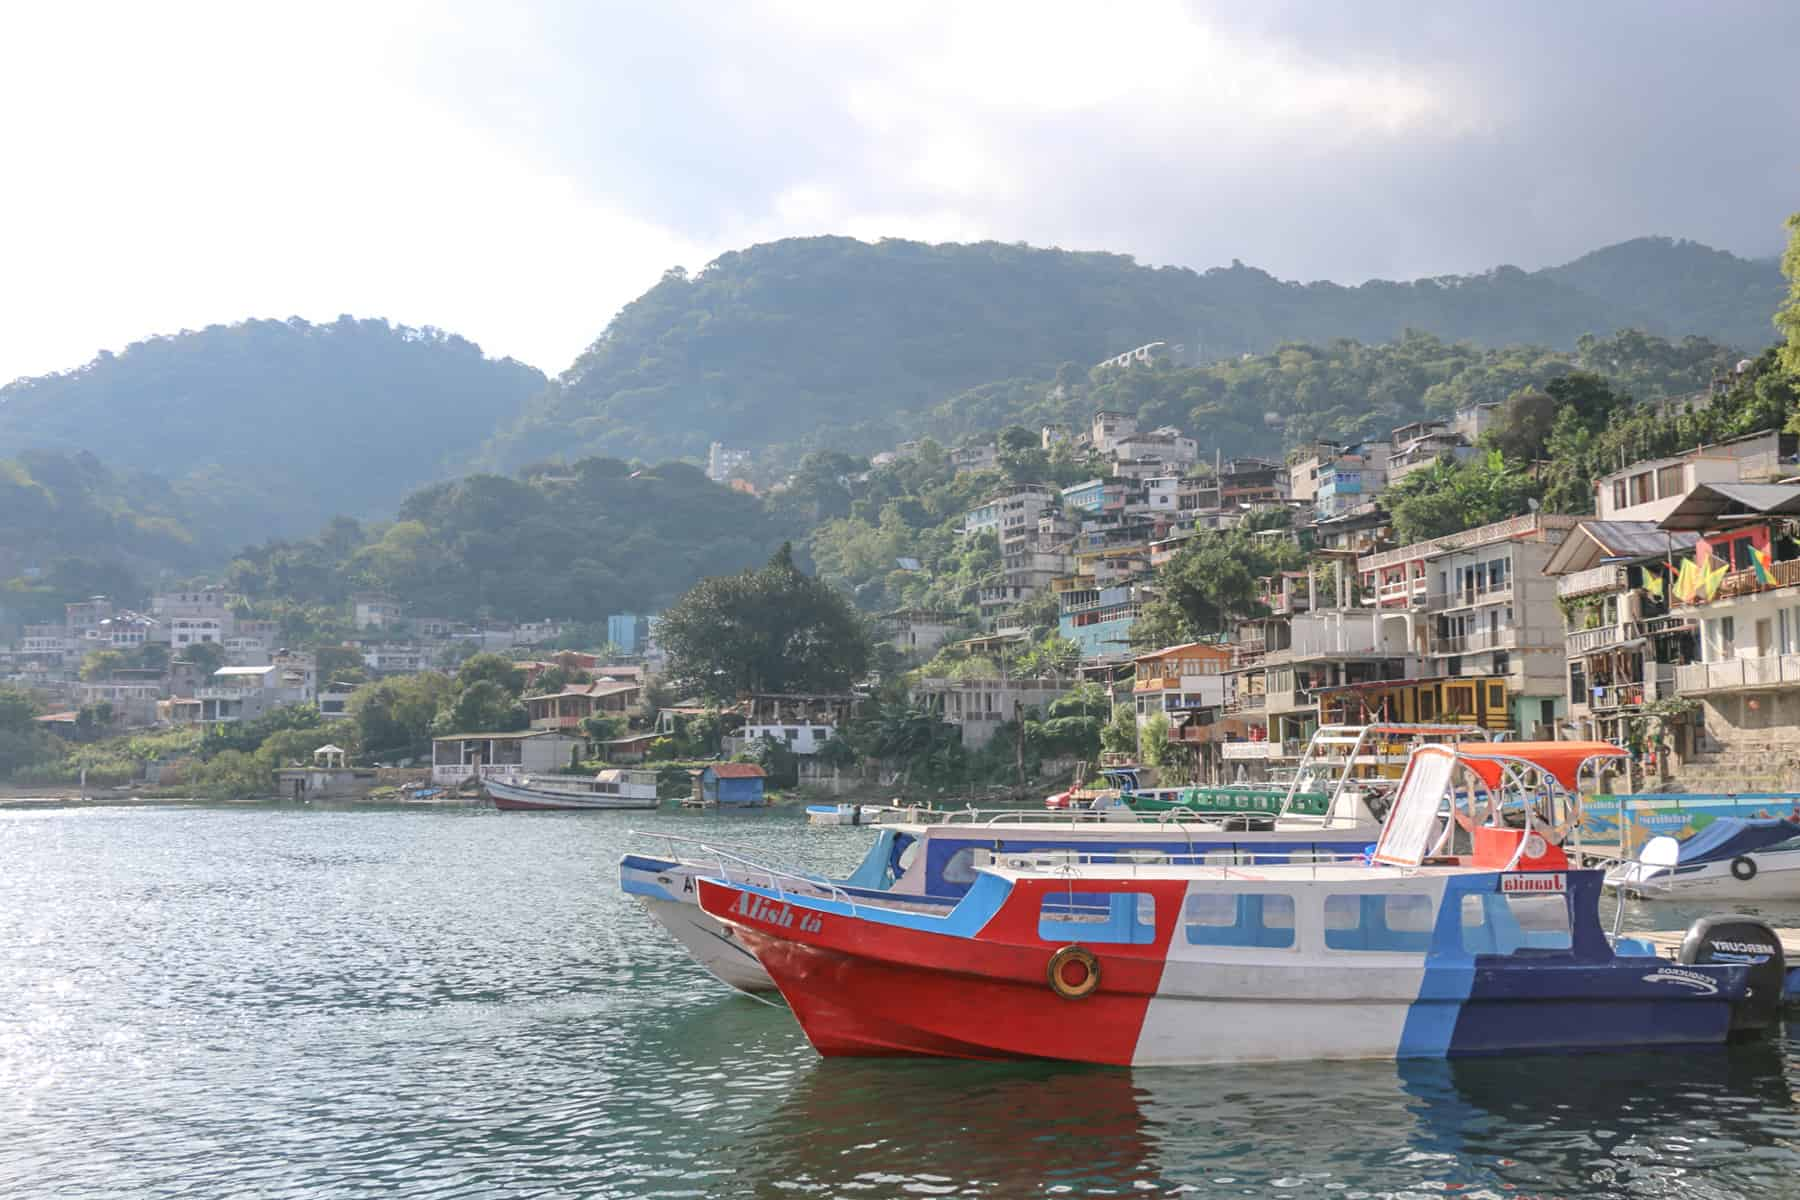 Red white and blue boat in the water with a village behind it at Lake Atitlan